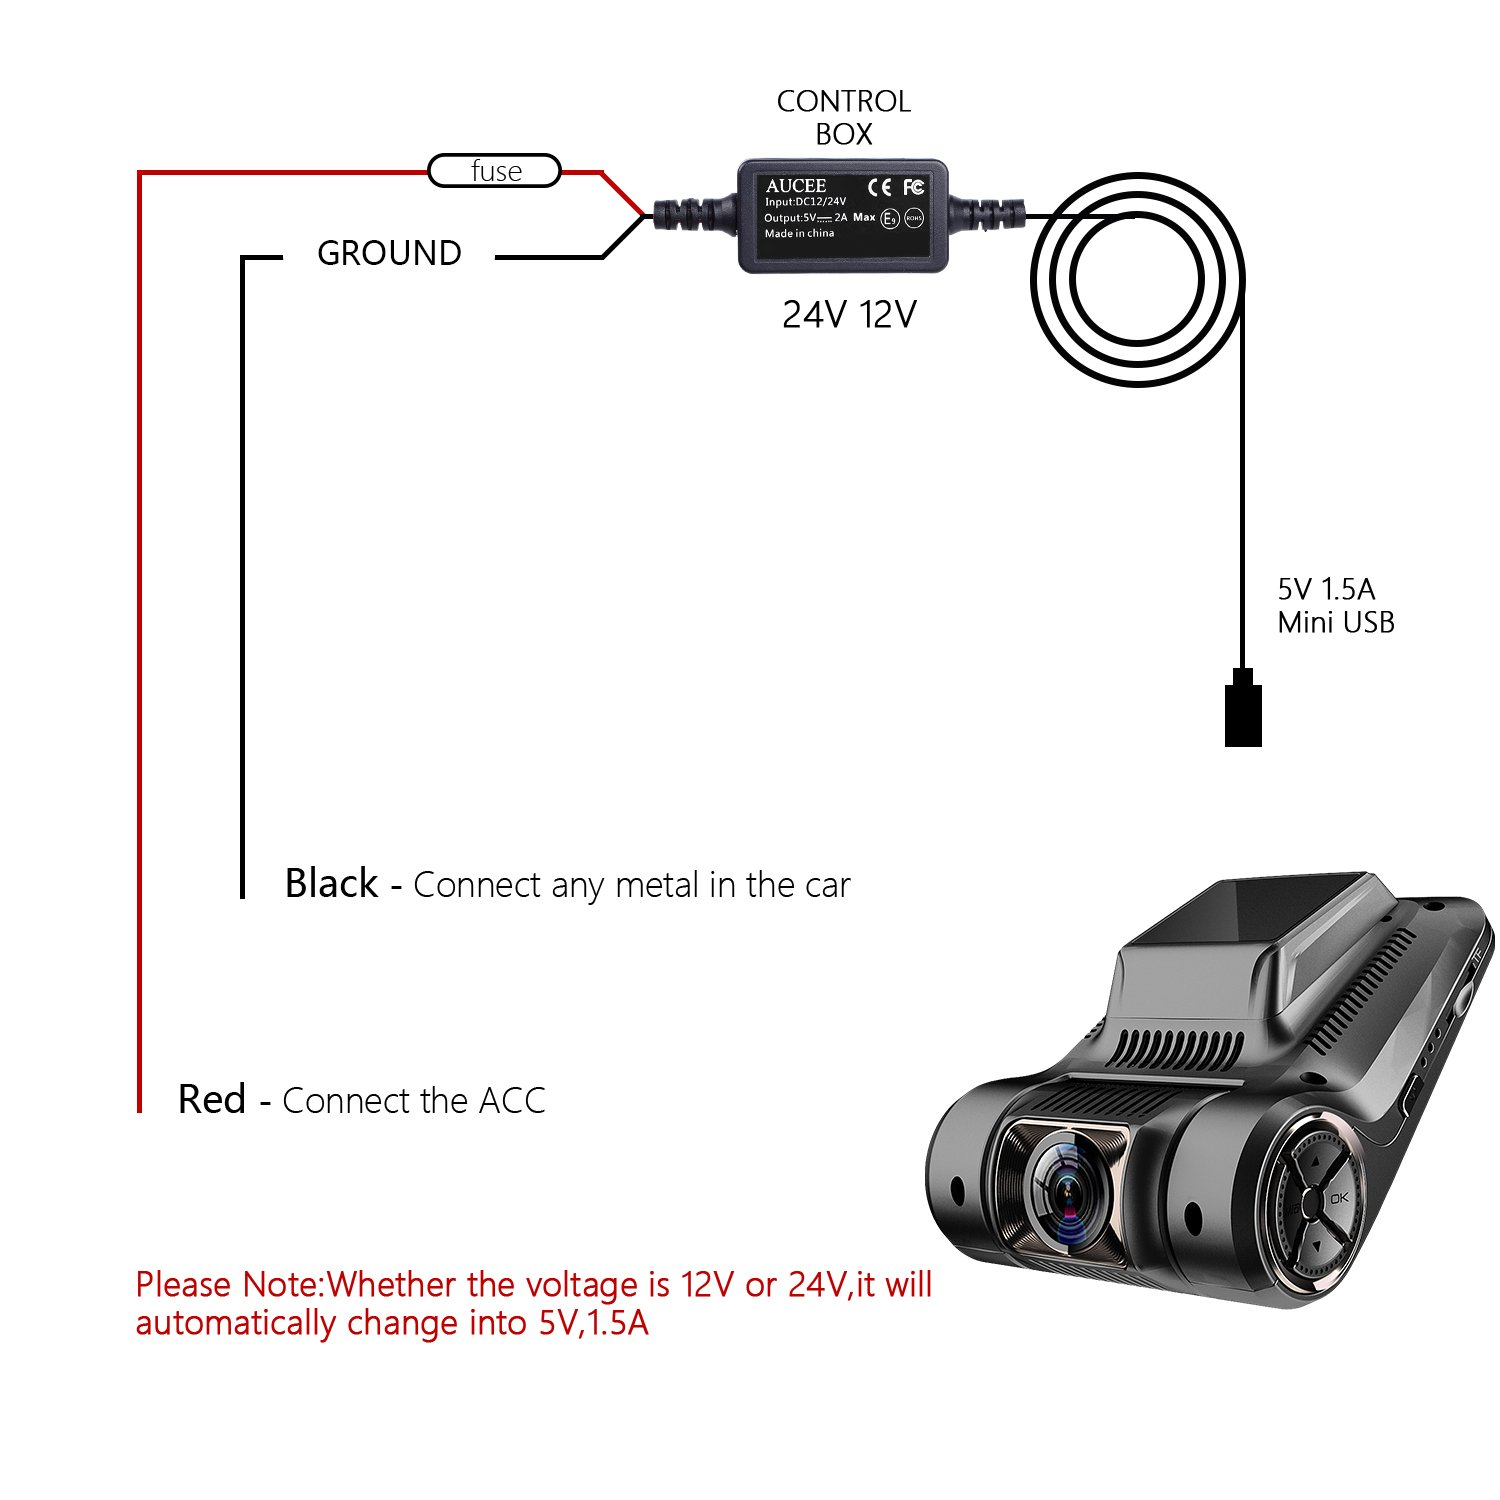 Aucee Dash Cam Hardwire Kit Mini Usb Portdc 12v 36v To 5v 2a Max Car Fuse Box Charger Cable With Fuselow Voltage Protection For Cameras